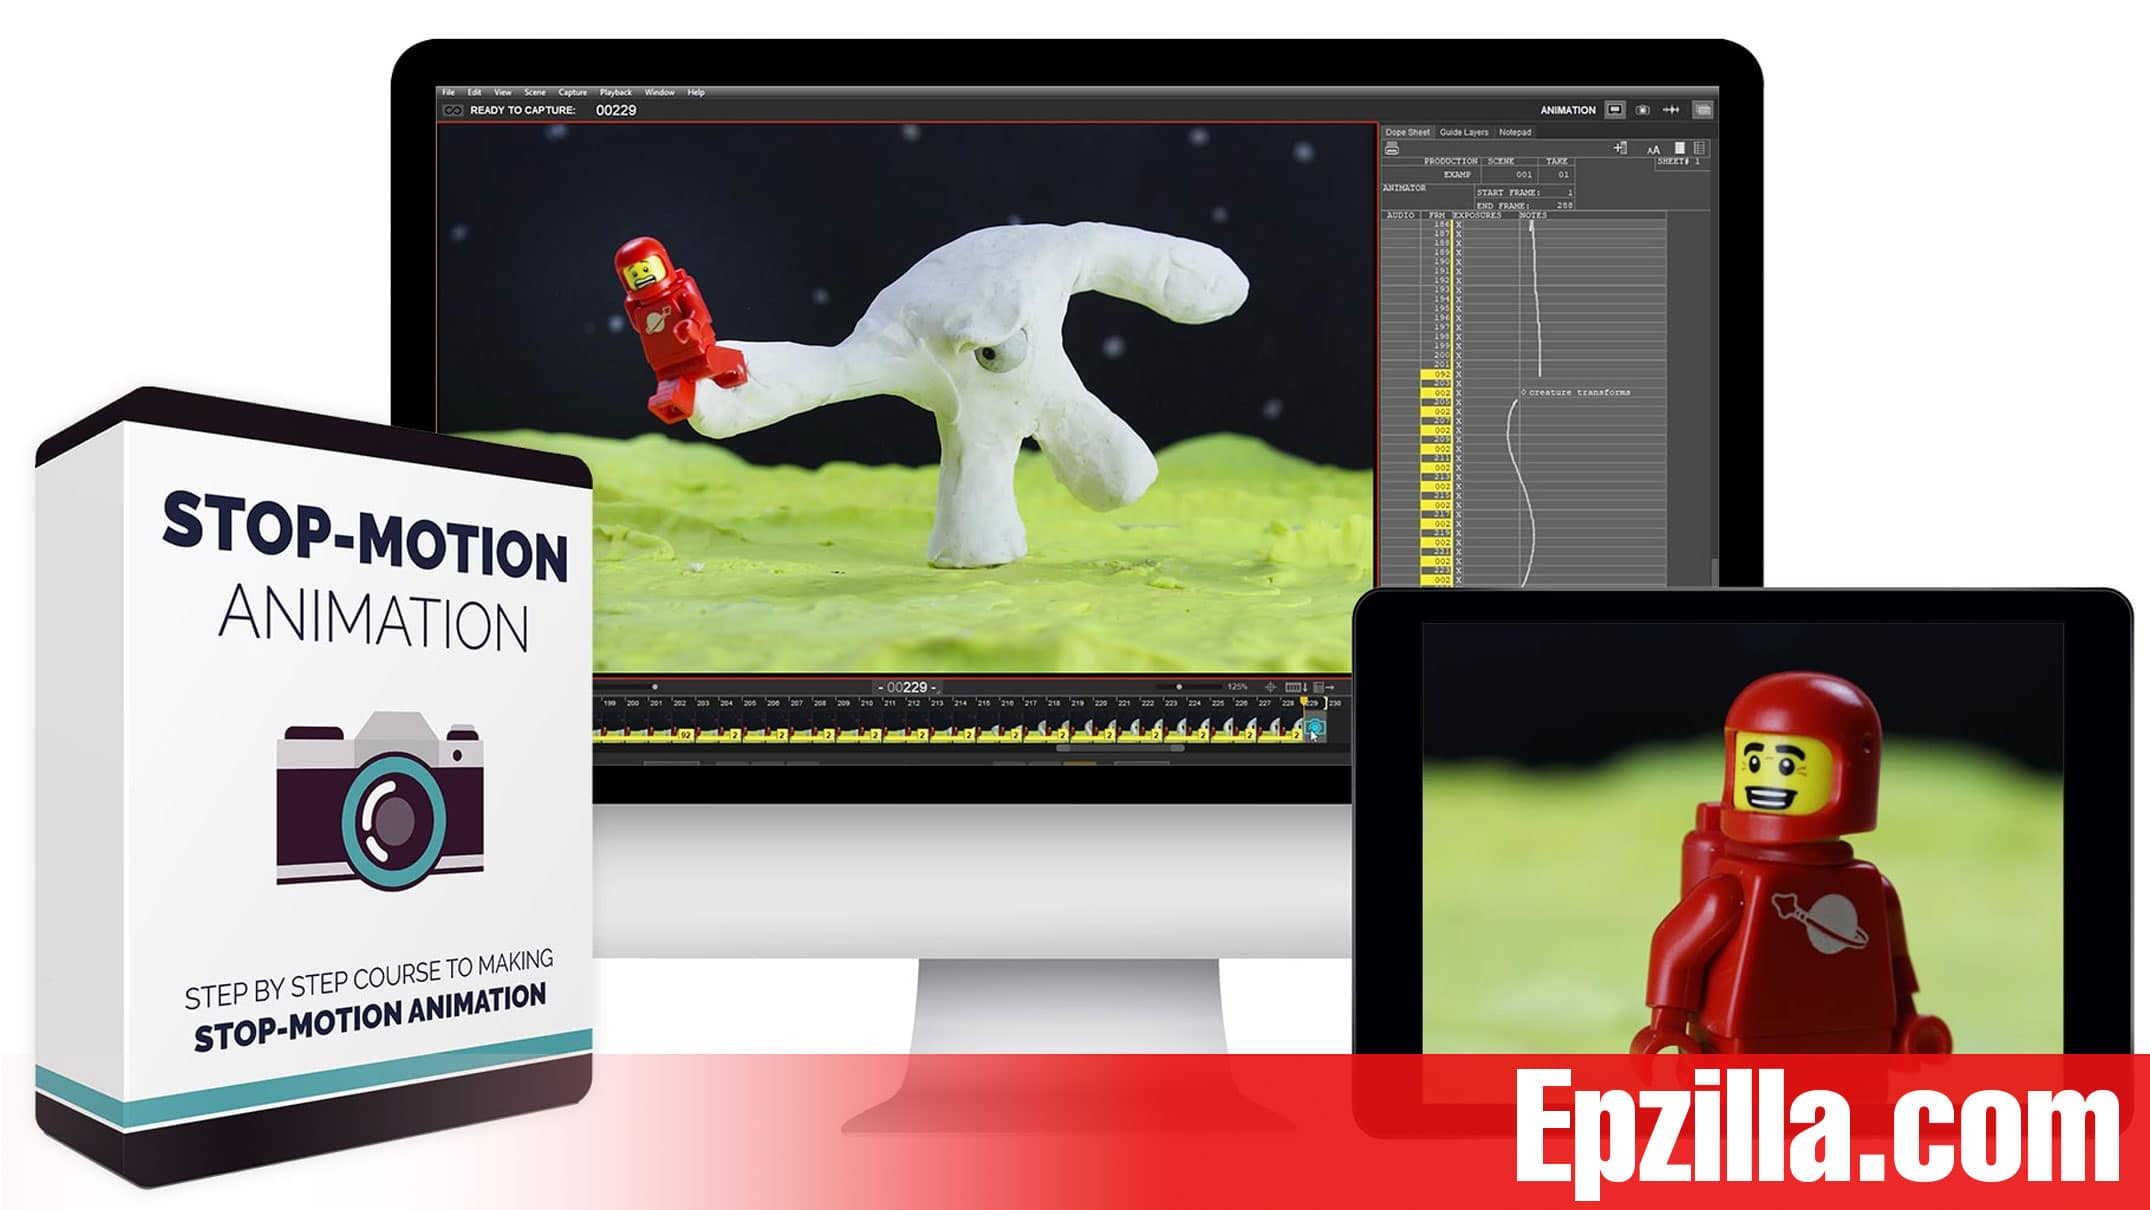 Bloop Animations Stop Motion Animation Free Download Epzilla.com